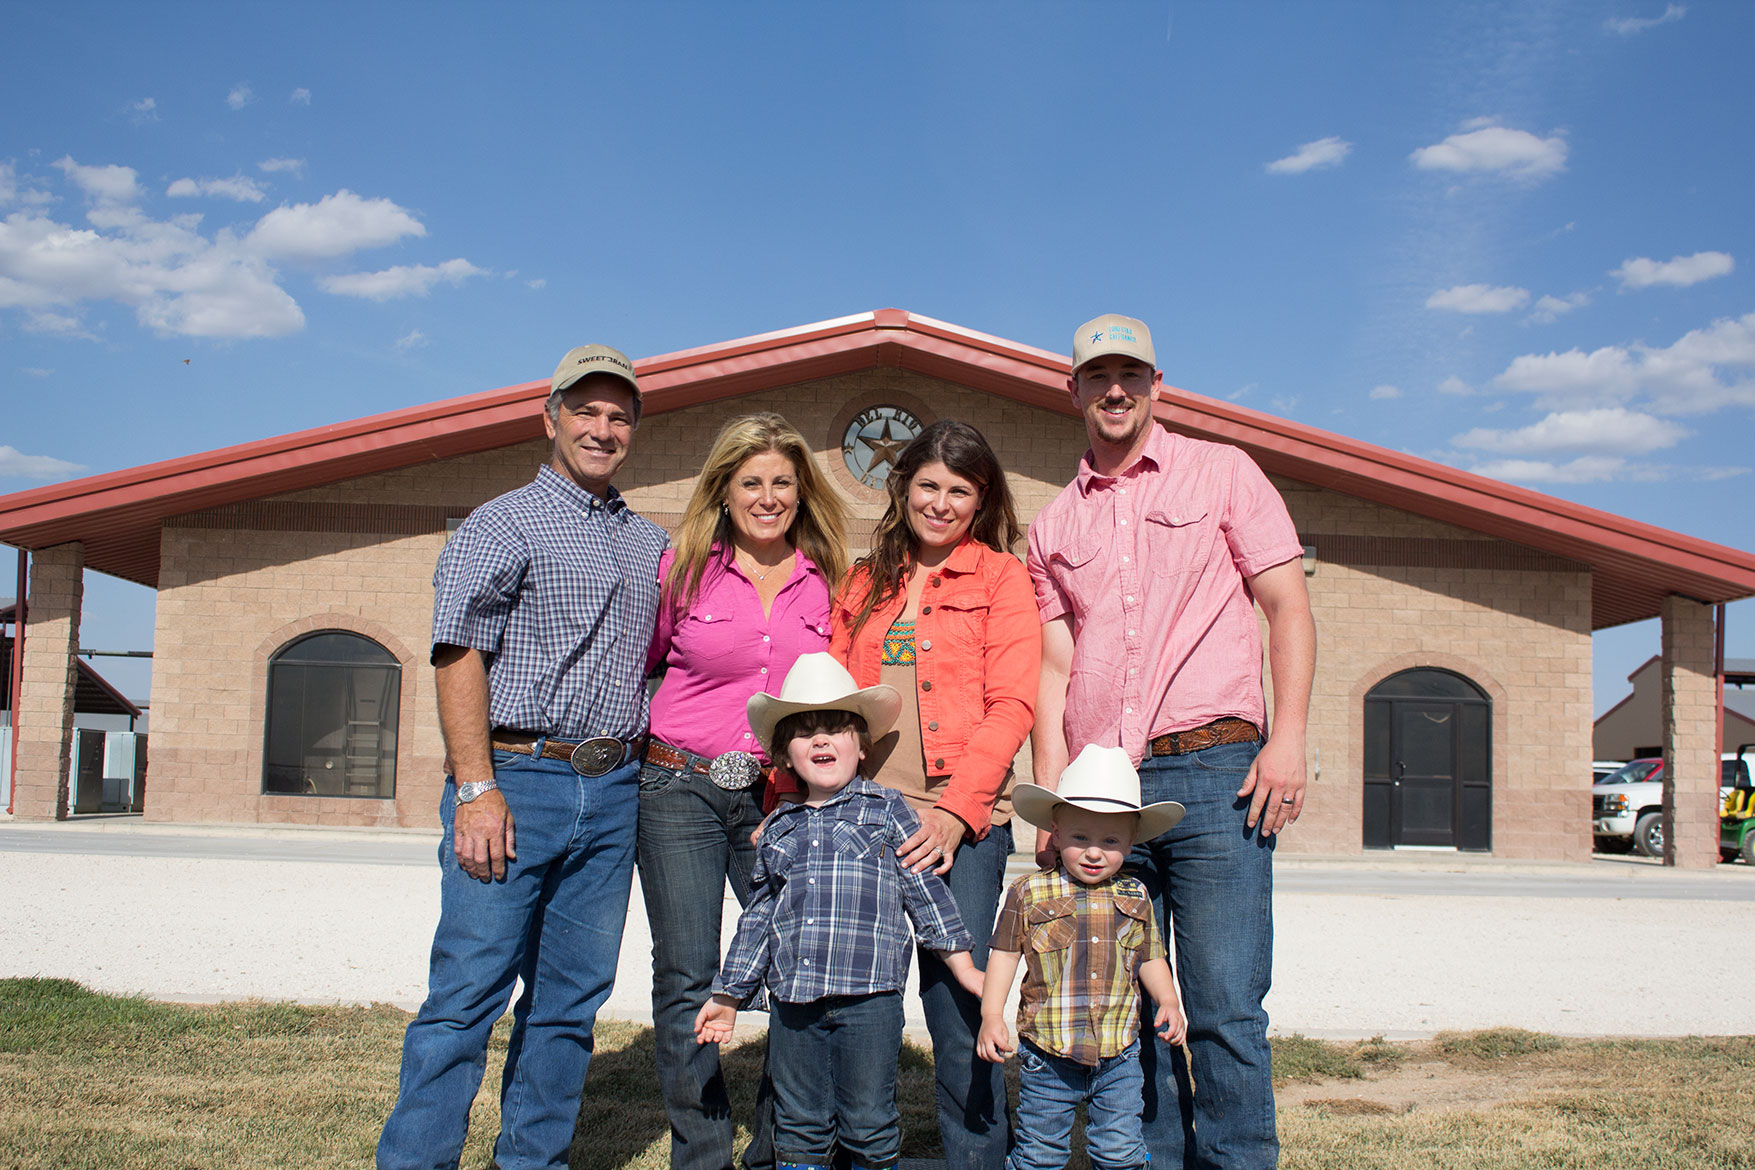 The Gingg family poses for a photo in front of the milking parlor.